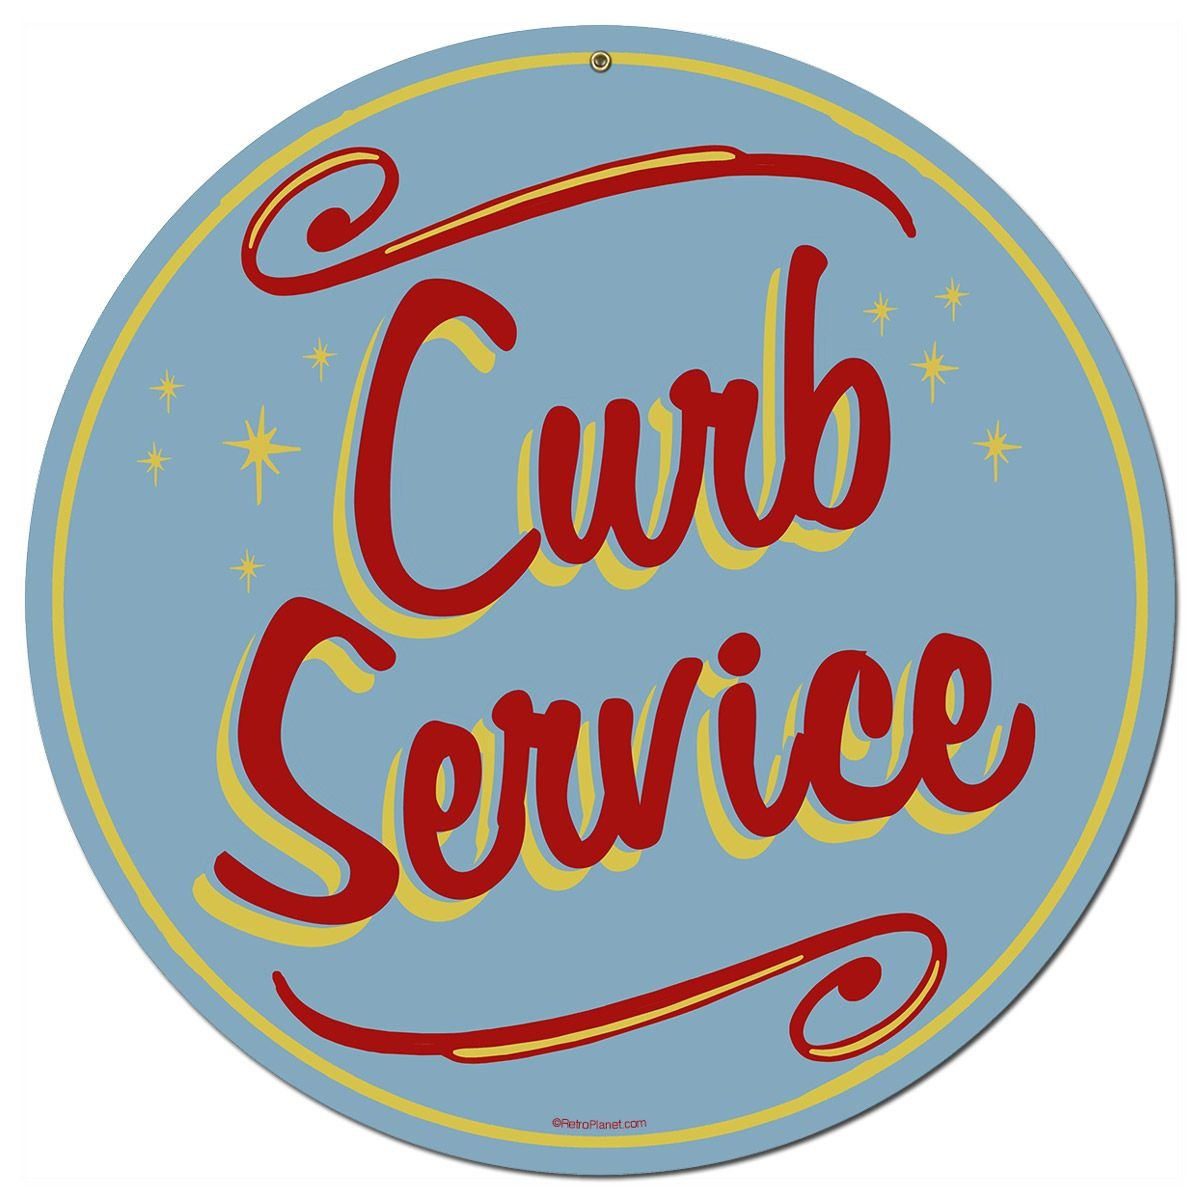 Curb Service Drive-In Large Metal Sign Round | Vintage diner, Diners ...